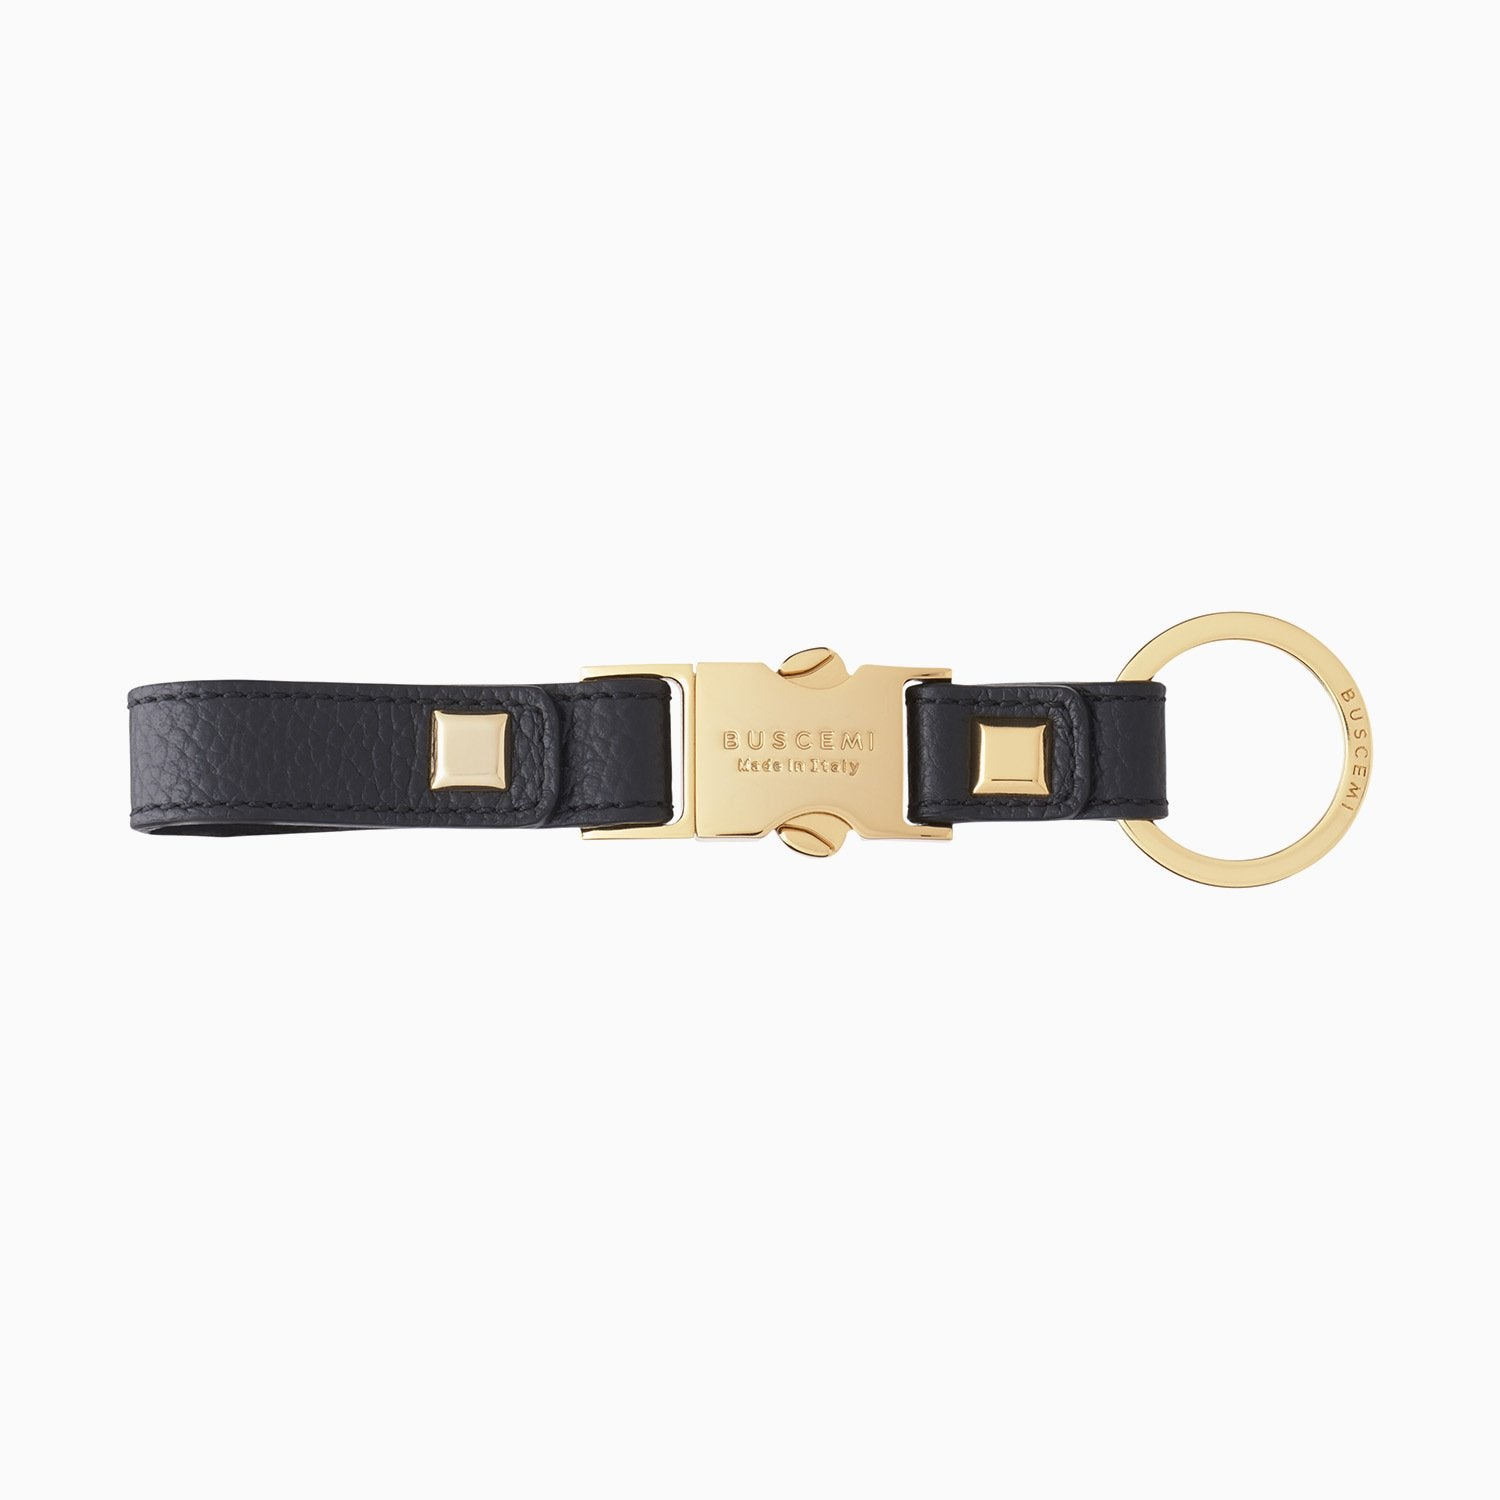 KEY-HOLDER CLIP | BLACK-Buscemi